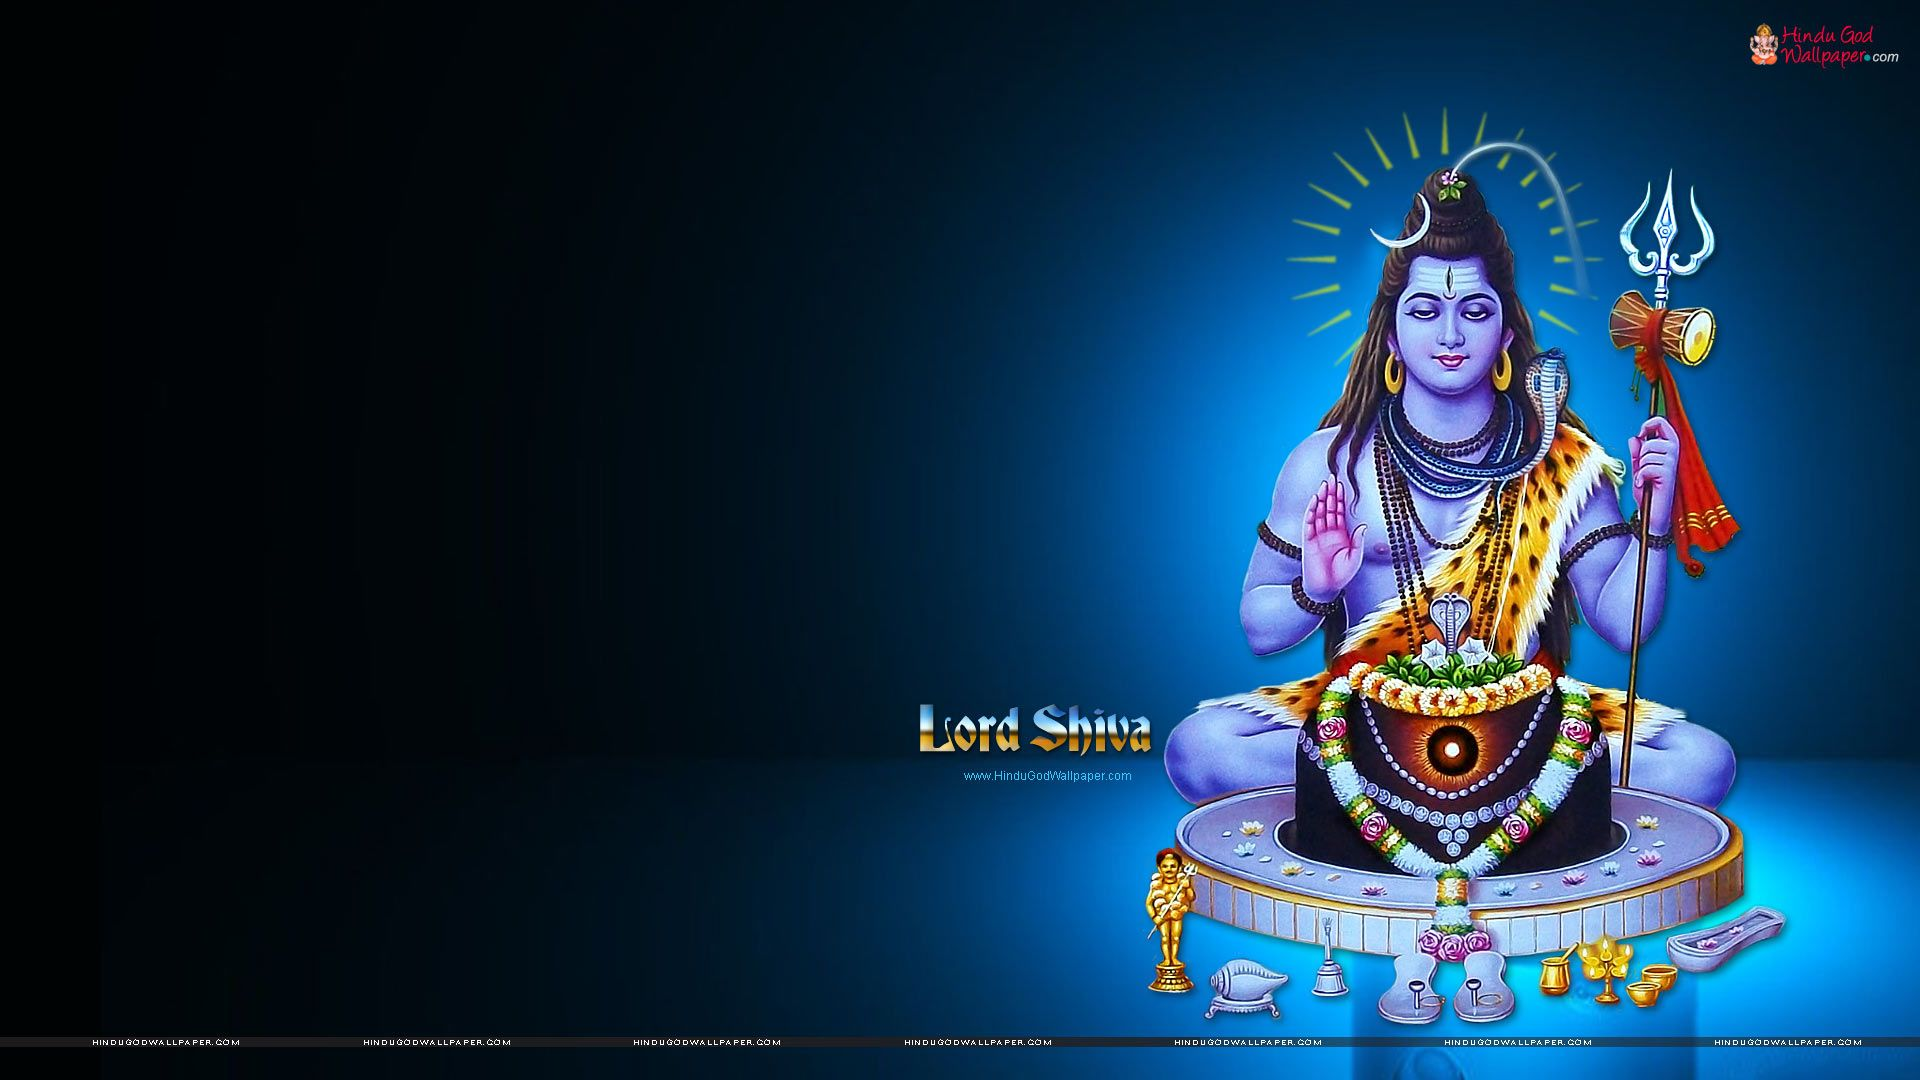 Hindu God Hd Wallpapers 1080p In 2020 Shiva Wallpaper Lord Shiva Hd Images Shiva Images Hd